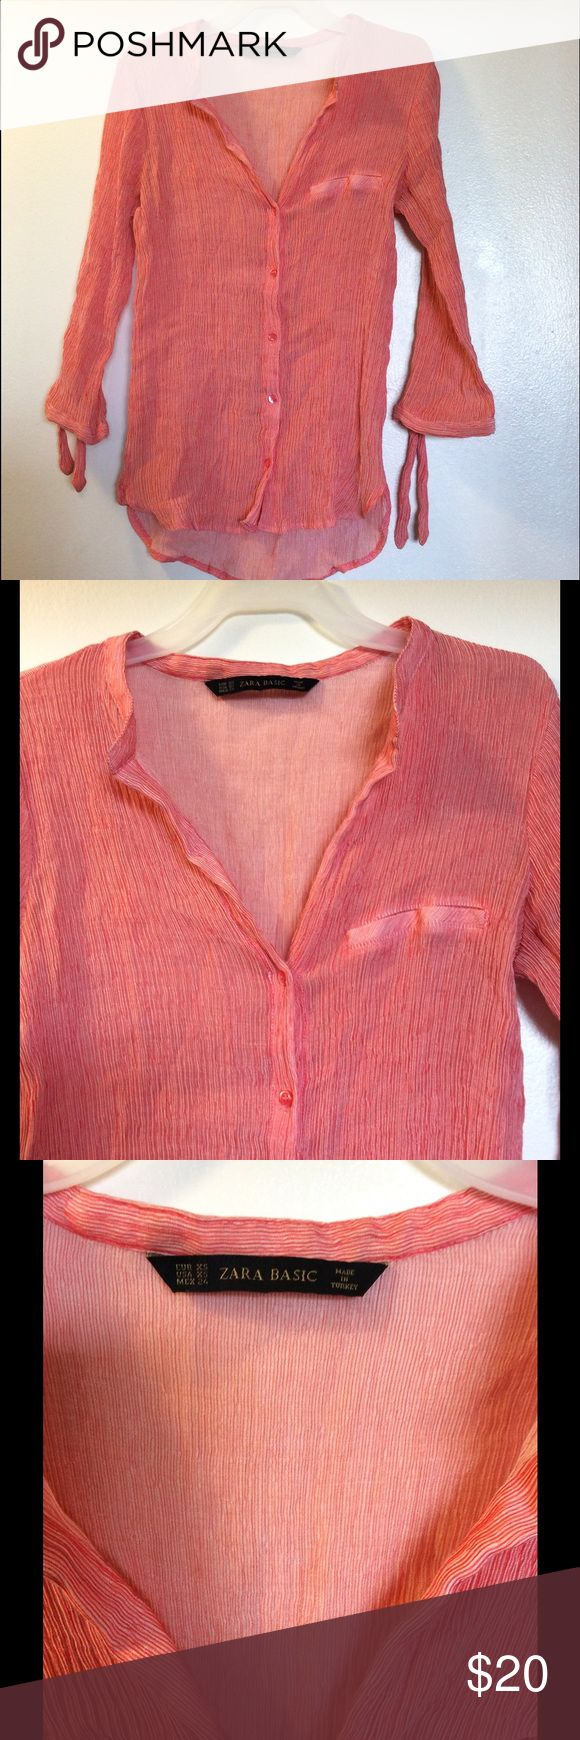 ZARA Basic Button Down Top You are Bidding on  ZARA Basic Button down shirt  Size: XS  Color: Orange , white striped  Condition:  Good used, No rips, or damages.  ***Be sure to check out out other Brands:  Hollister, GAP, Abercrombie & Fitch, ZARA, New York & Company, Forever 21, DKNY, Charlotte Russe, and Many More.  Thank you very much. Enjoy shopping! Zara Tops Button Down Shirts